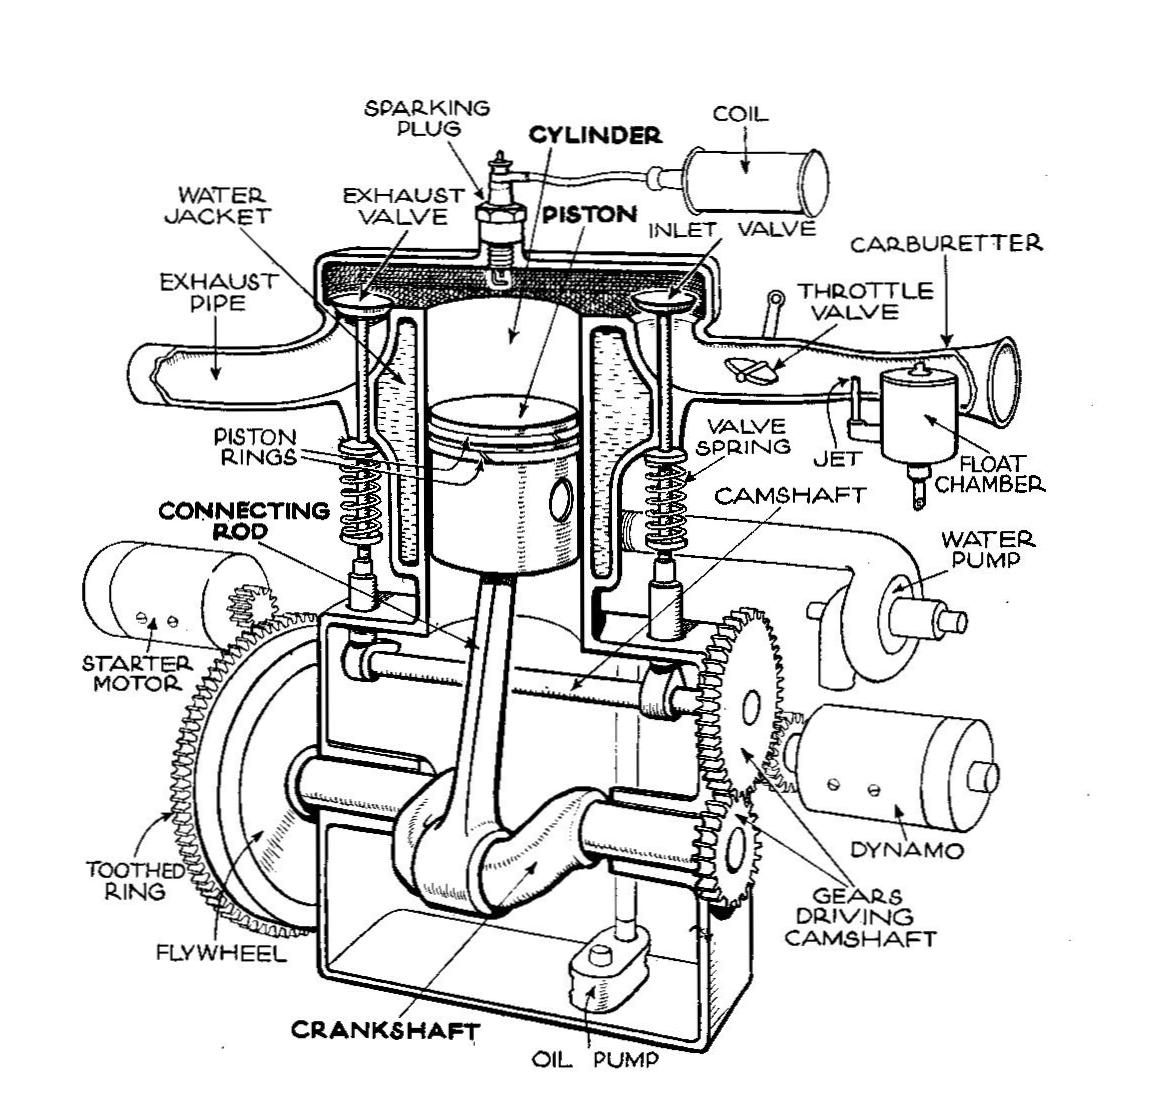 Flathead engine - Wikipedia